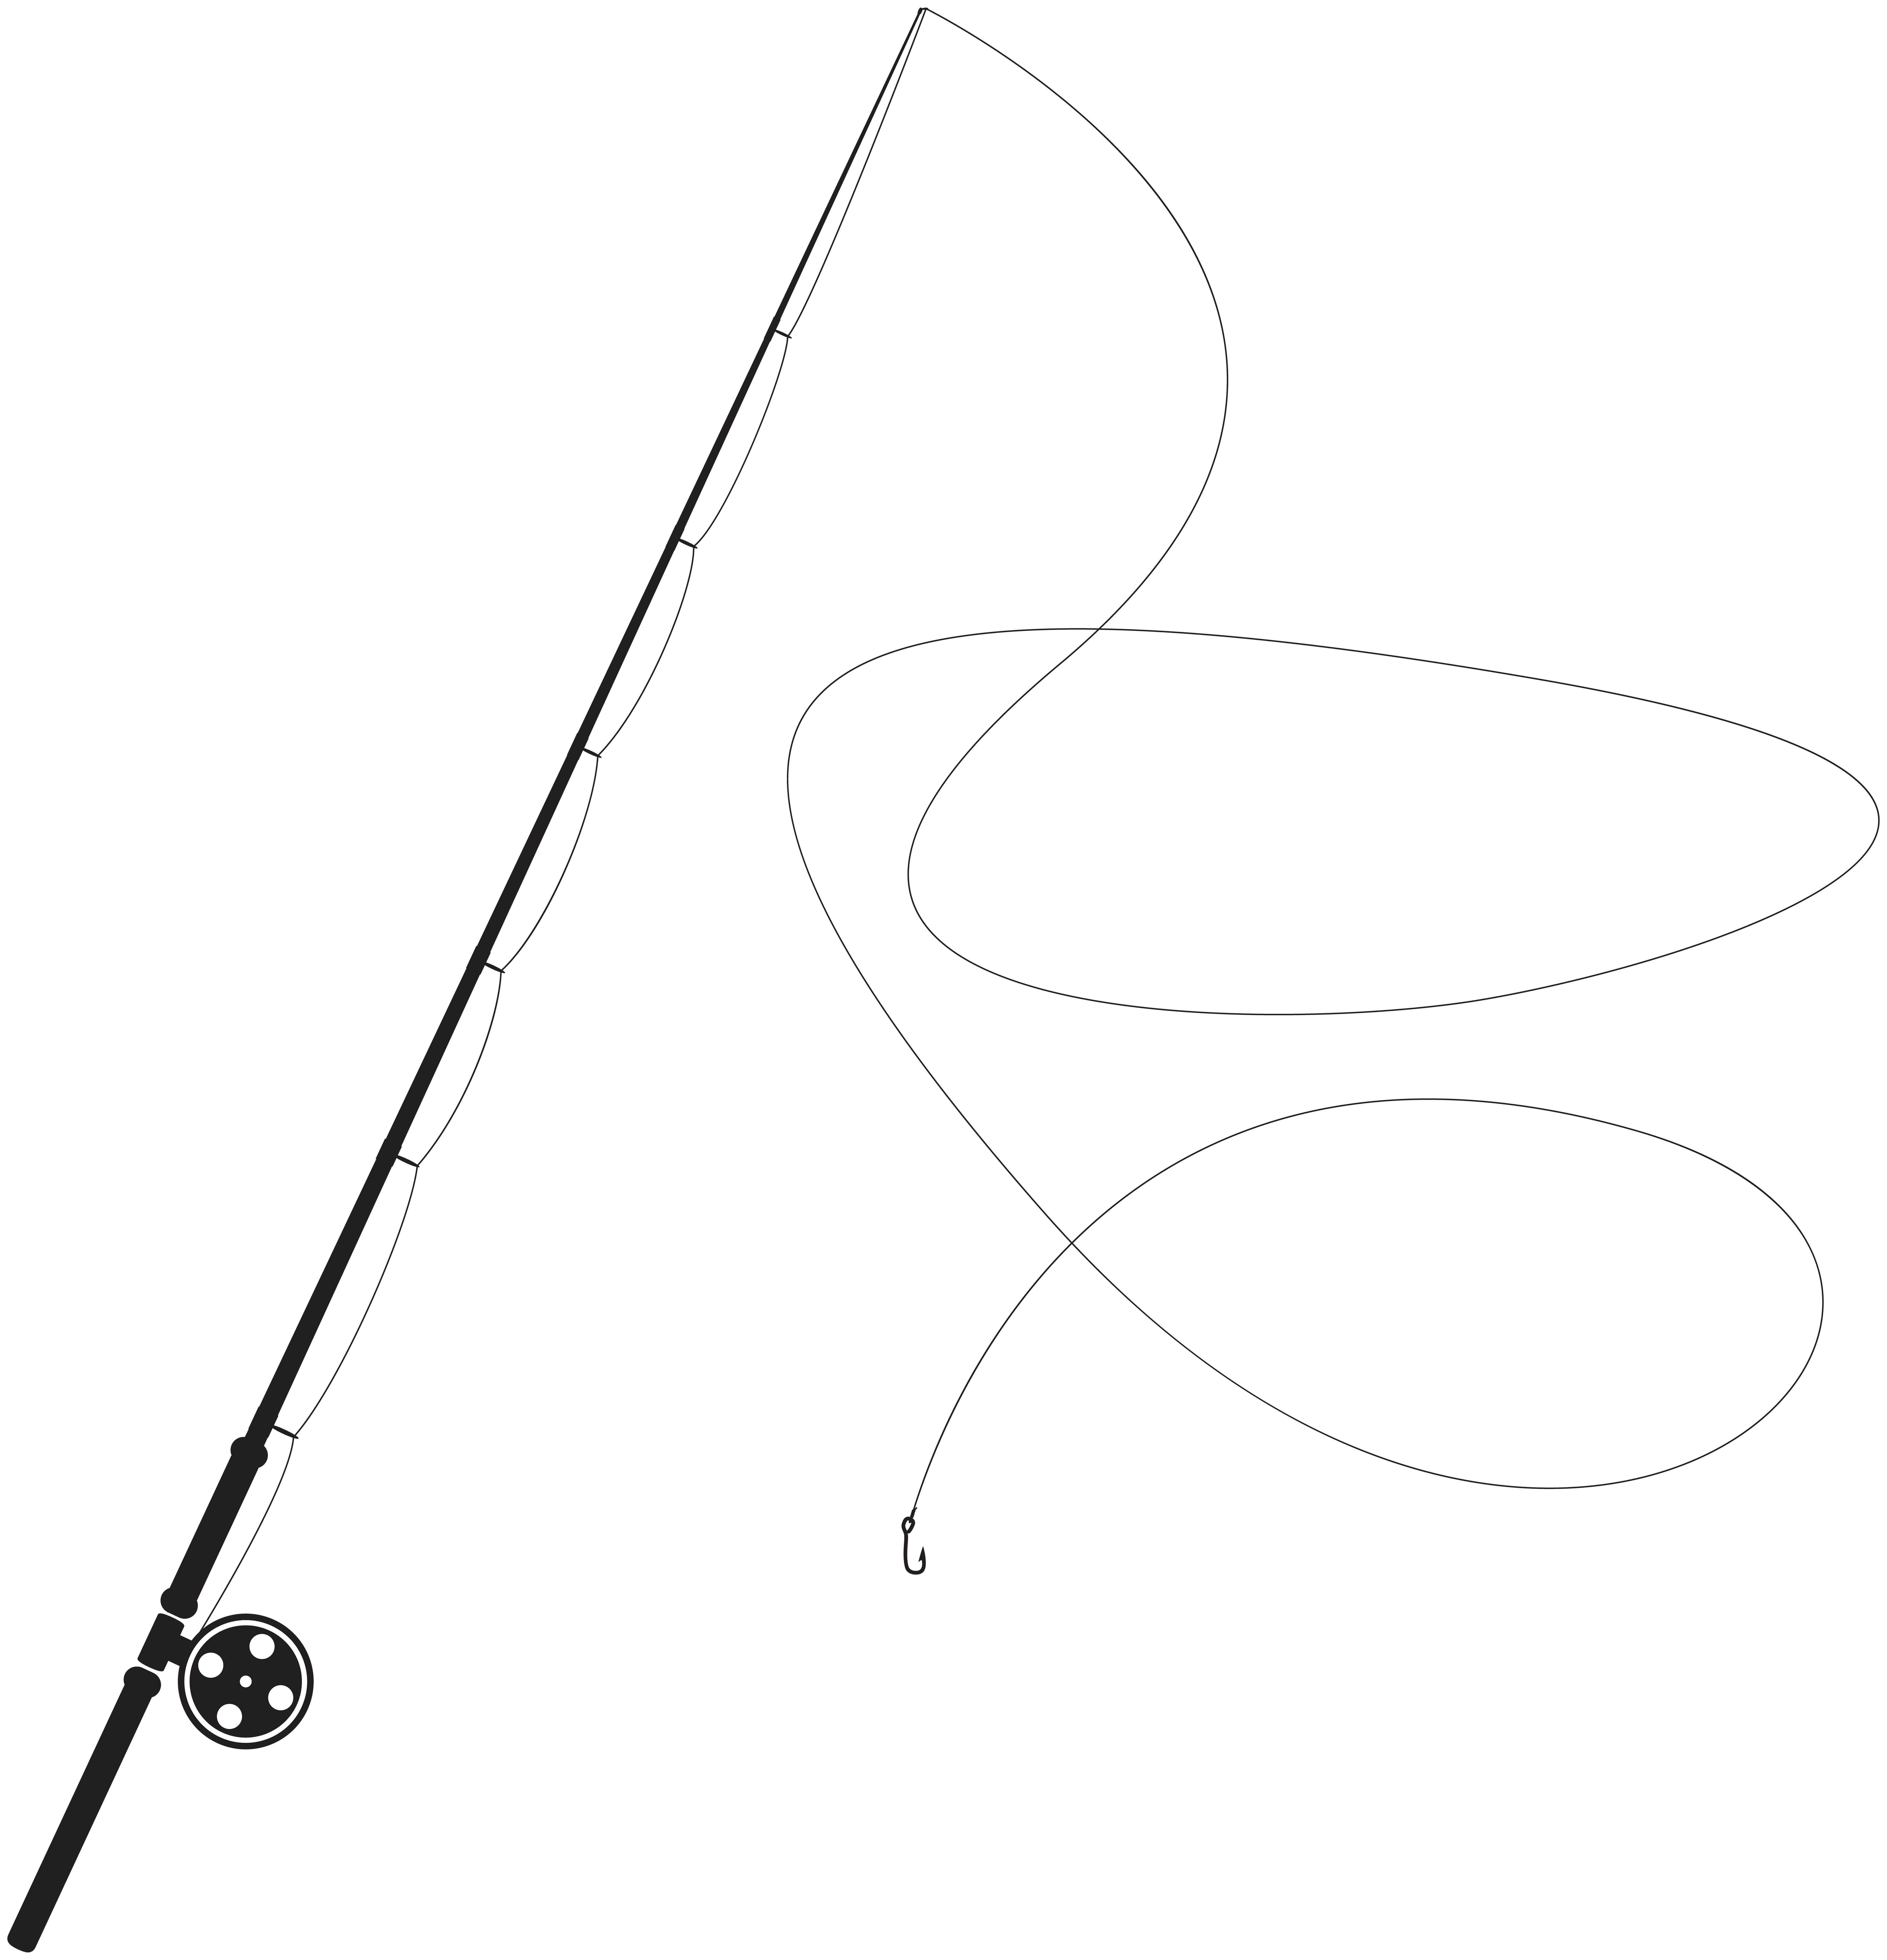 Fishing rod png. Silhouette clip art best